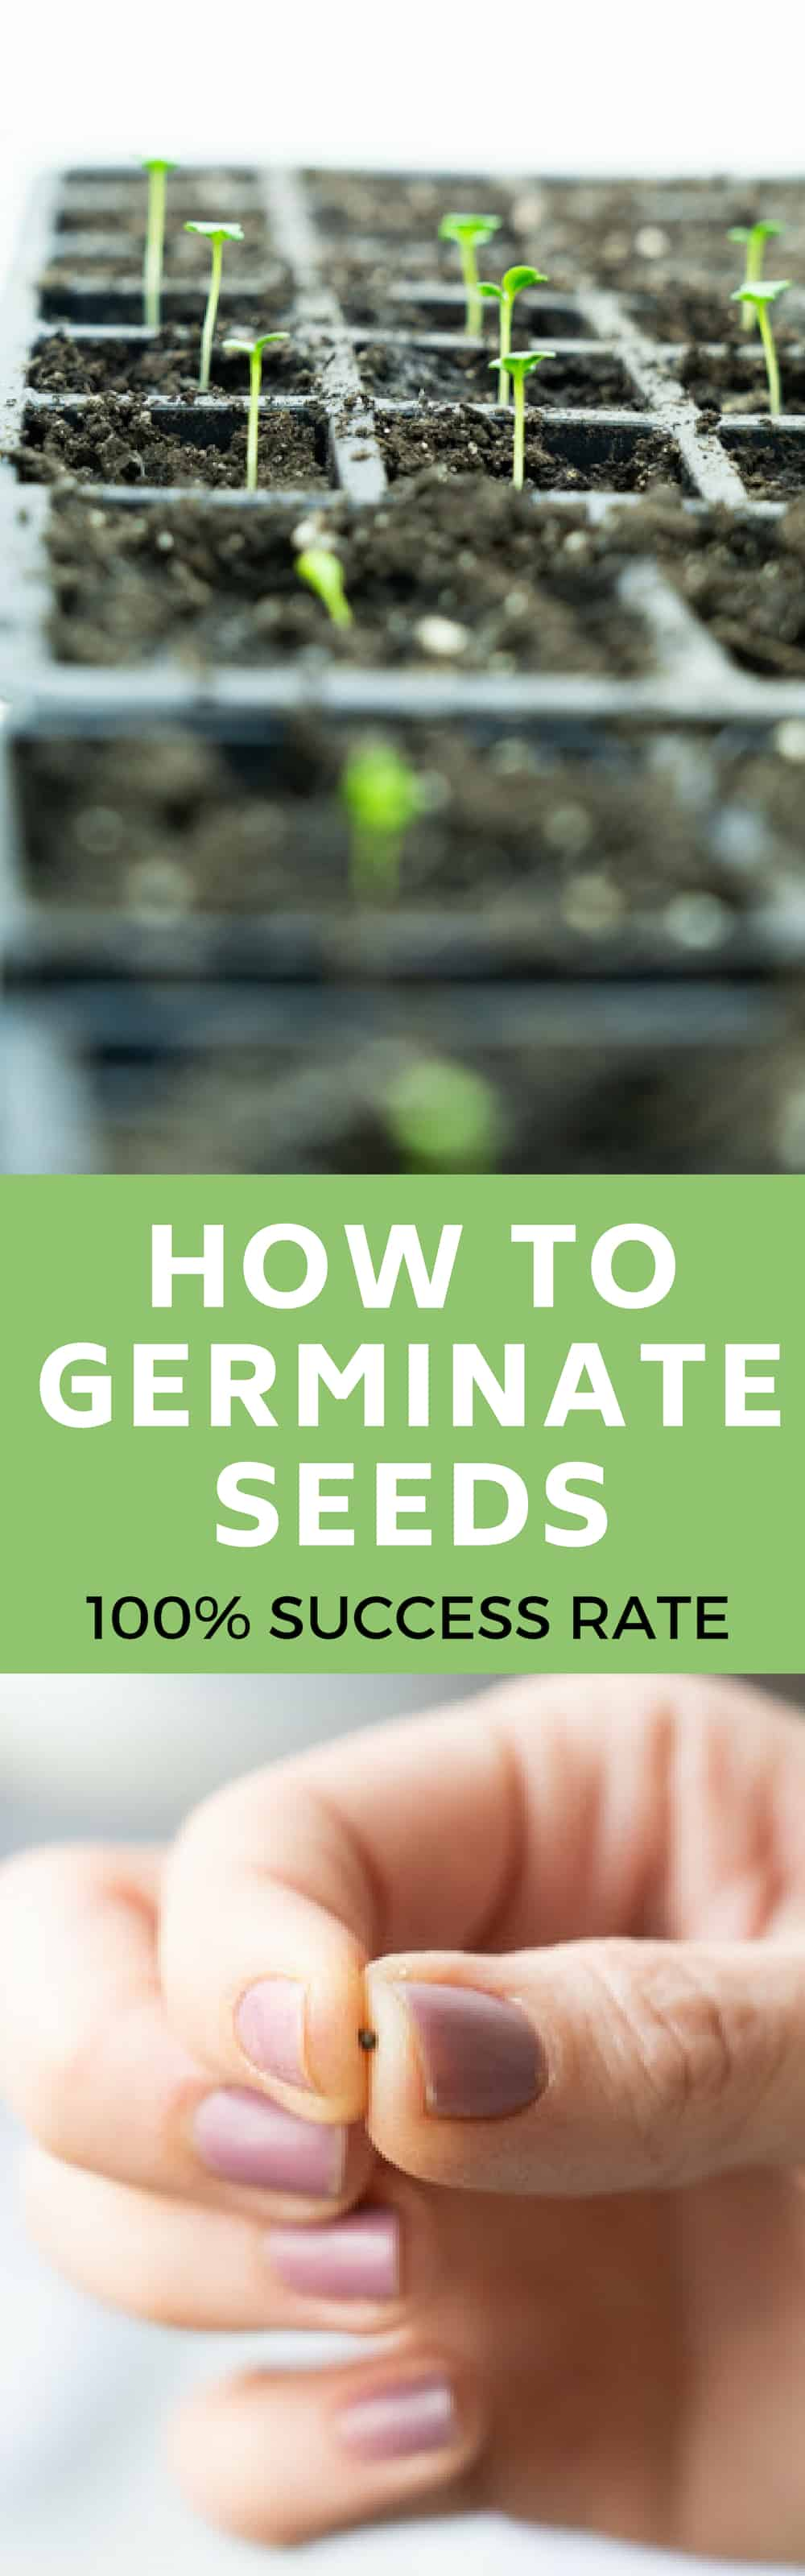 We use a heat mat and thermometer to germinate our vegetable garden seeds.  Find out how we use these tools to get a 100% germination rate. This saves time and ensures reliable sprouting.